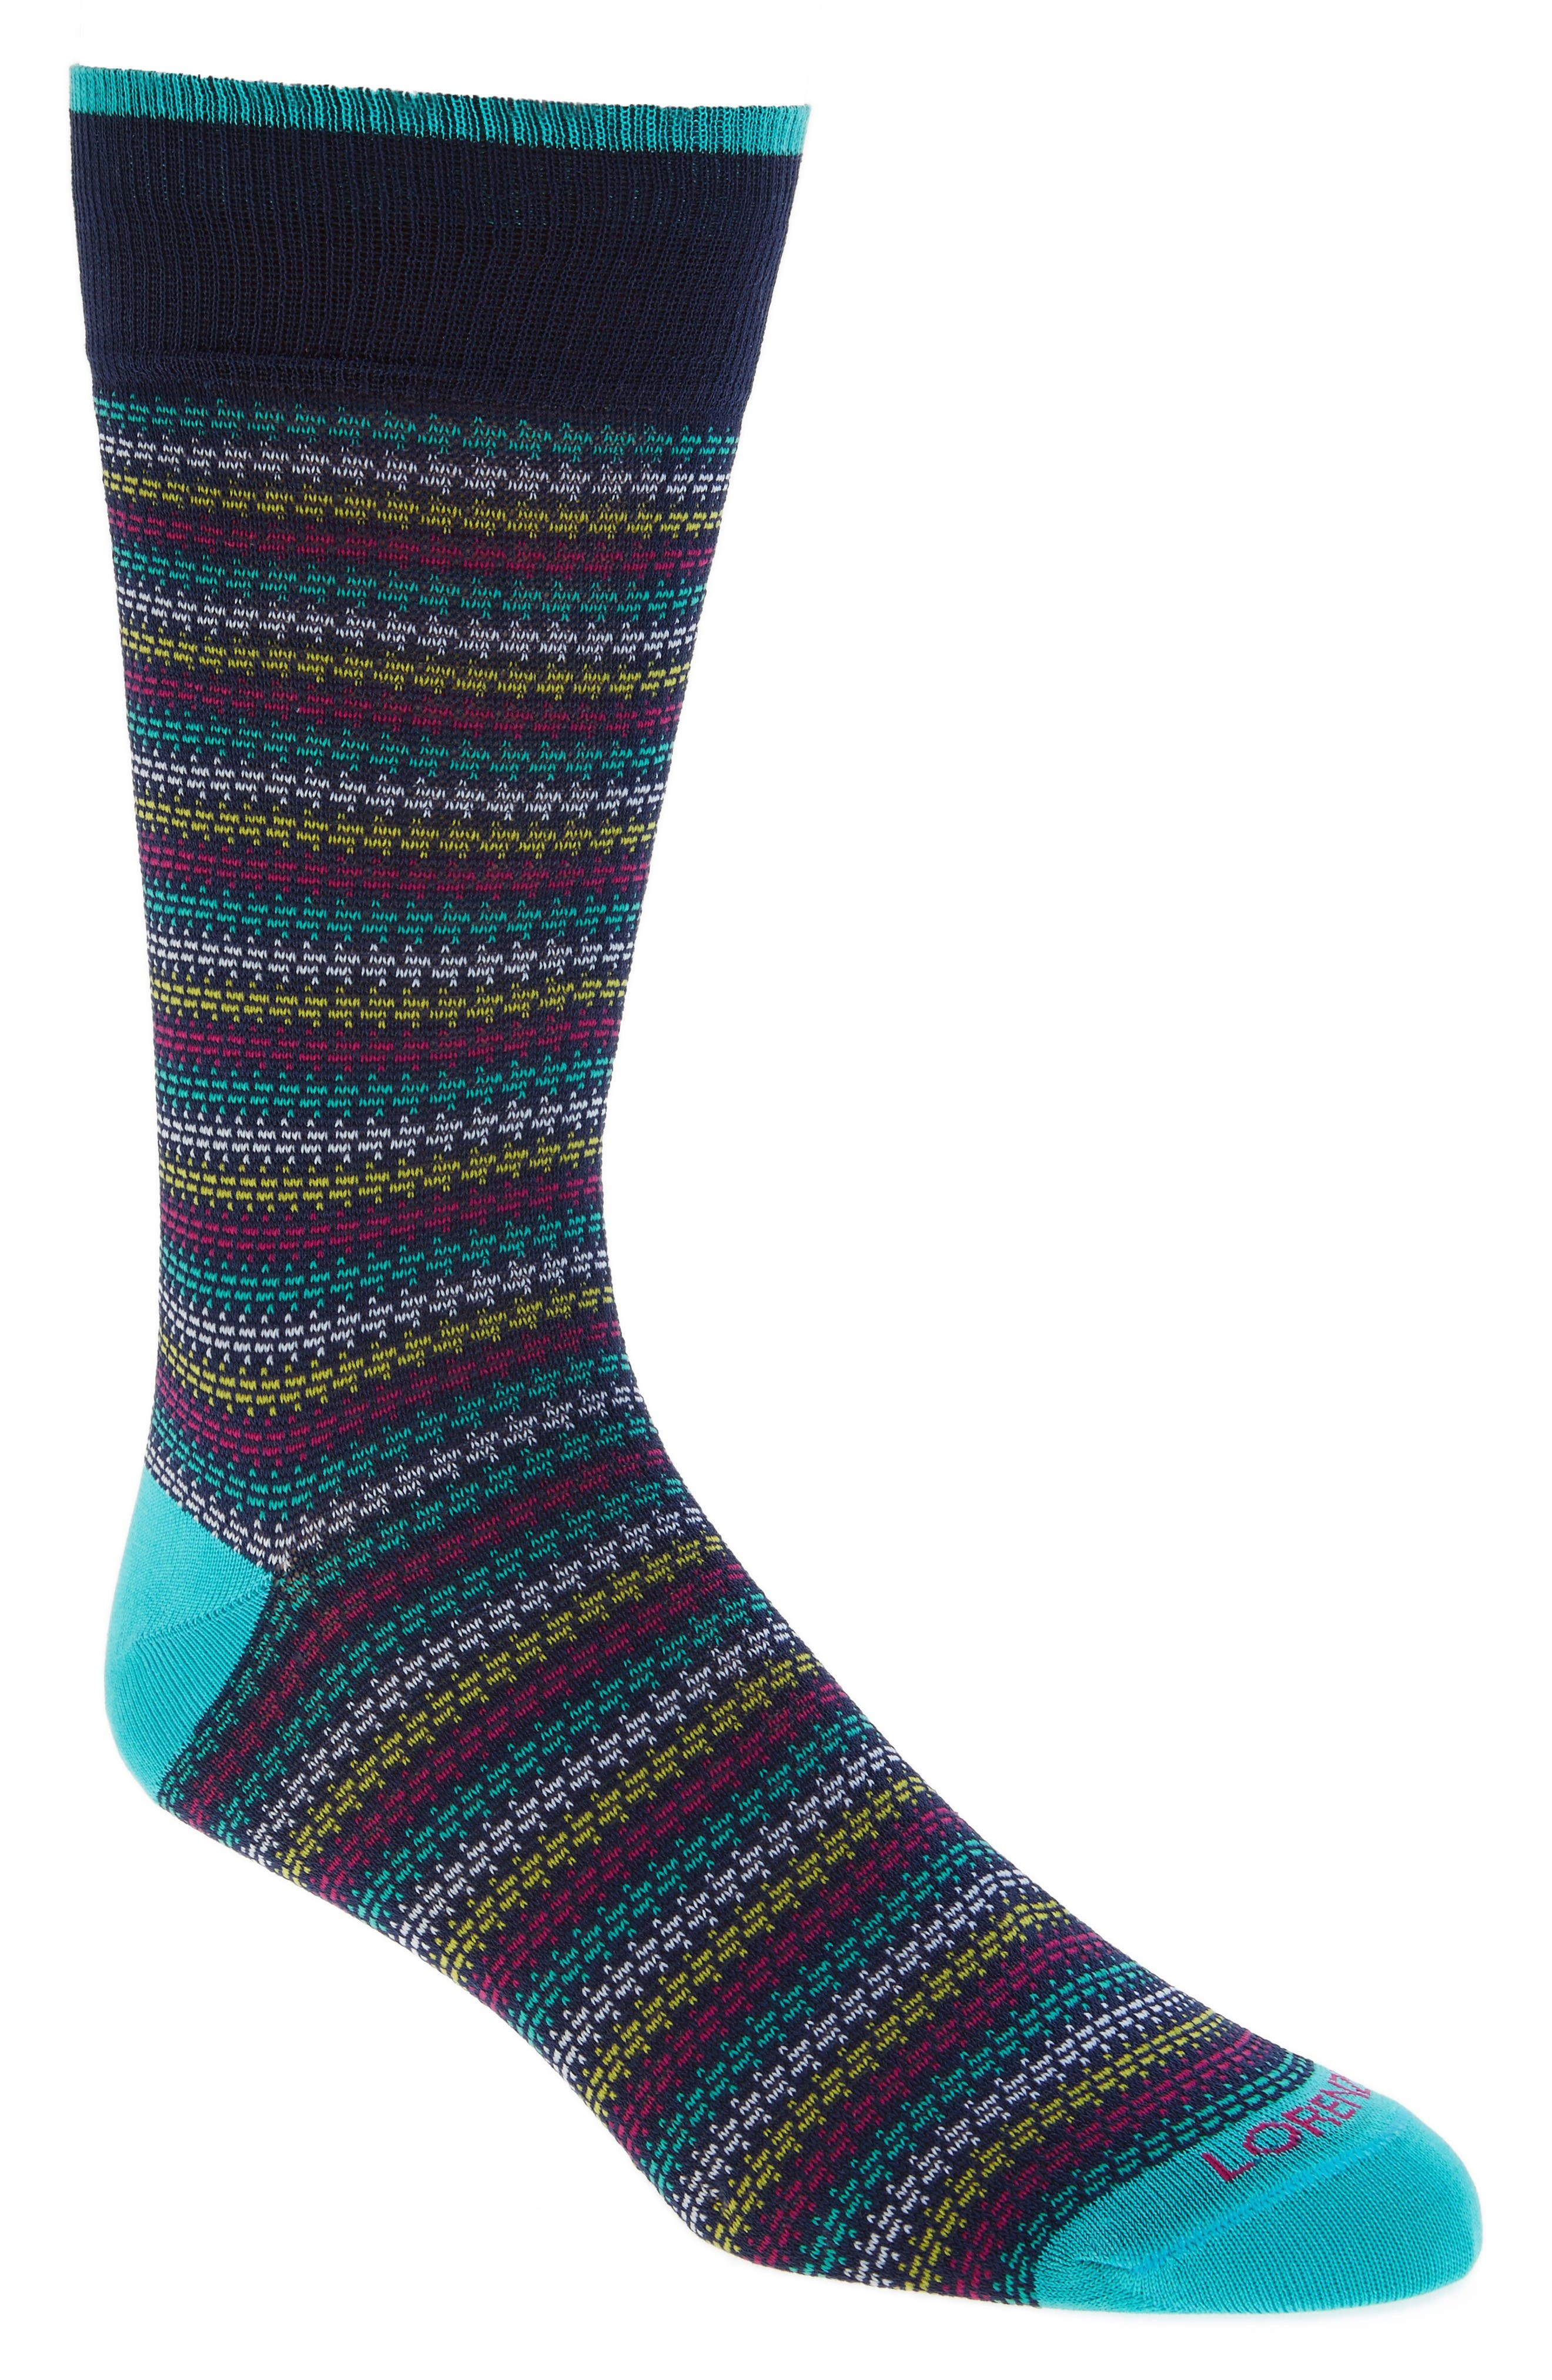 Houndstooth Stripe Crew Socks,                             Main thumbnail 1, color,                             Navy/ Teal